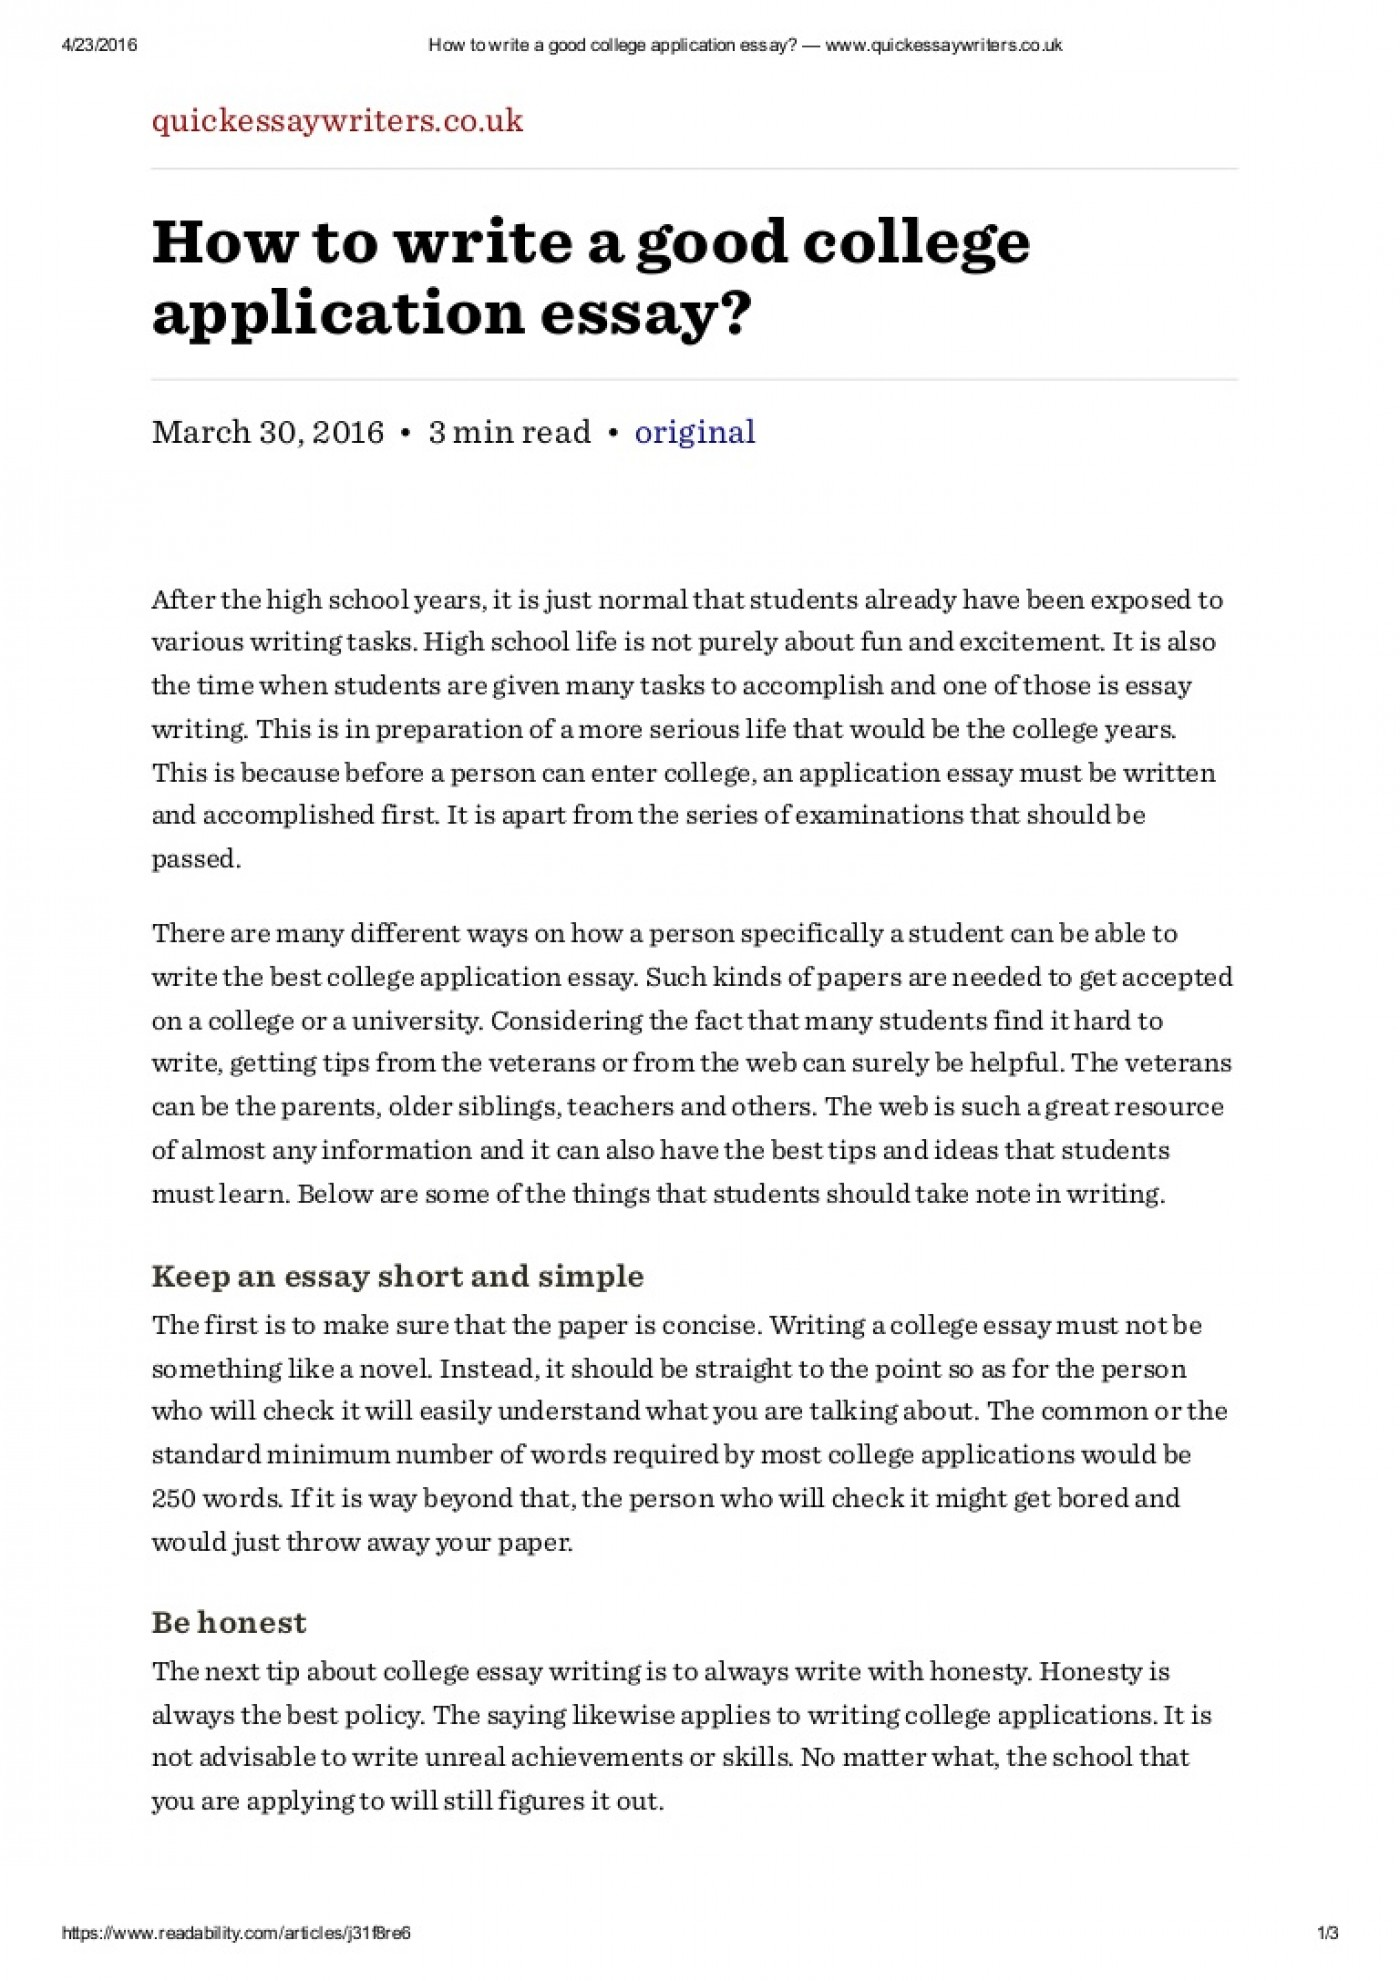 009 Howtowriteagoodcollegeapplicationessaywww Thumbnail Essay Example Writing College Rare A Application How To Write Term Paper Outline Topics On Examples 1400